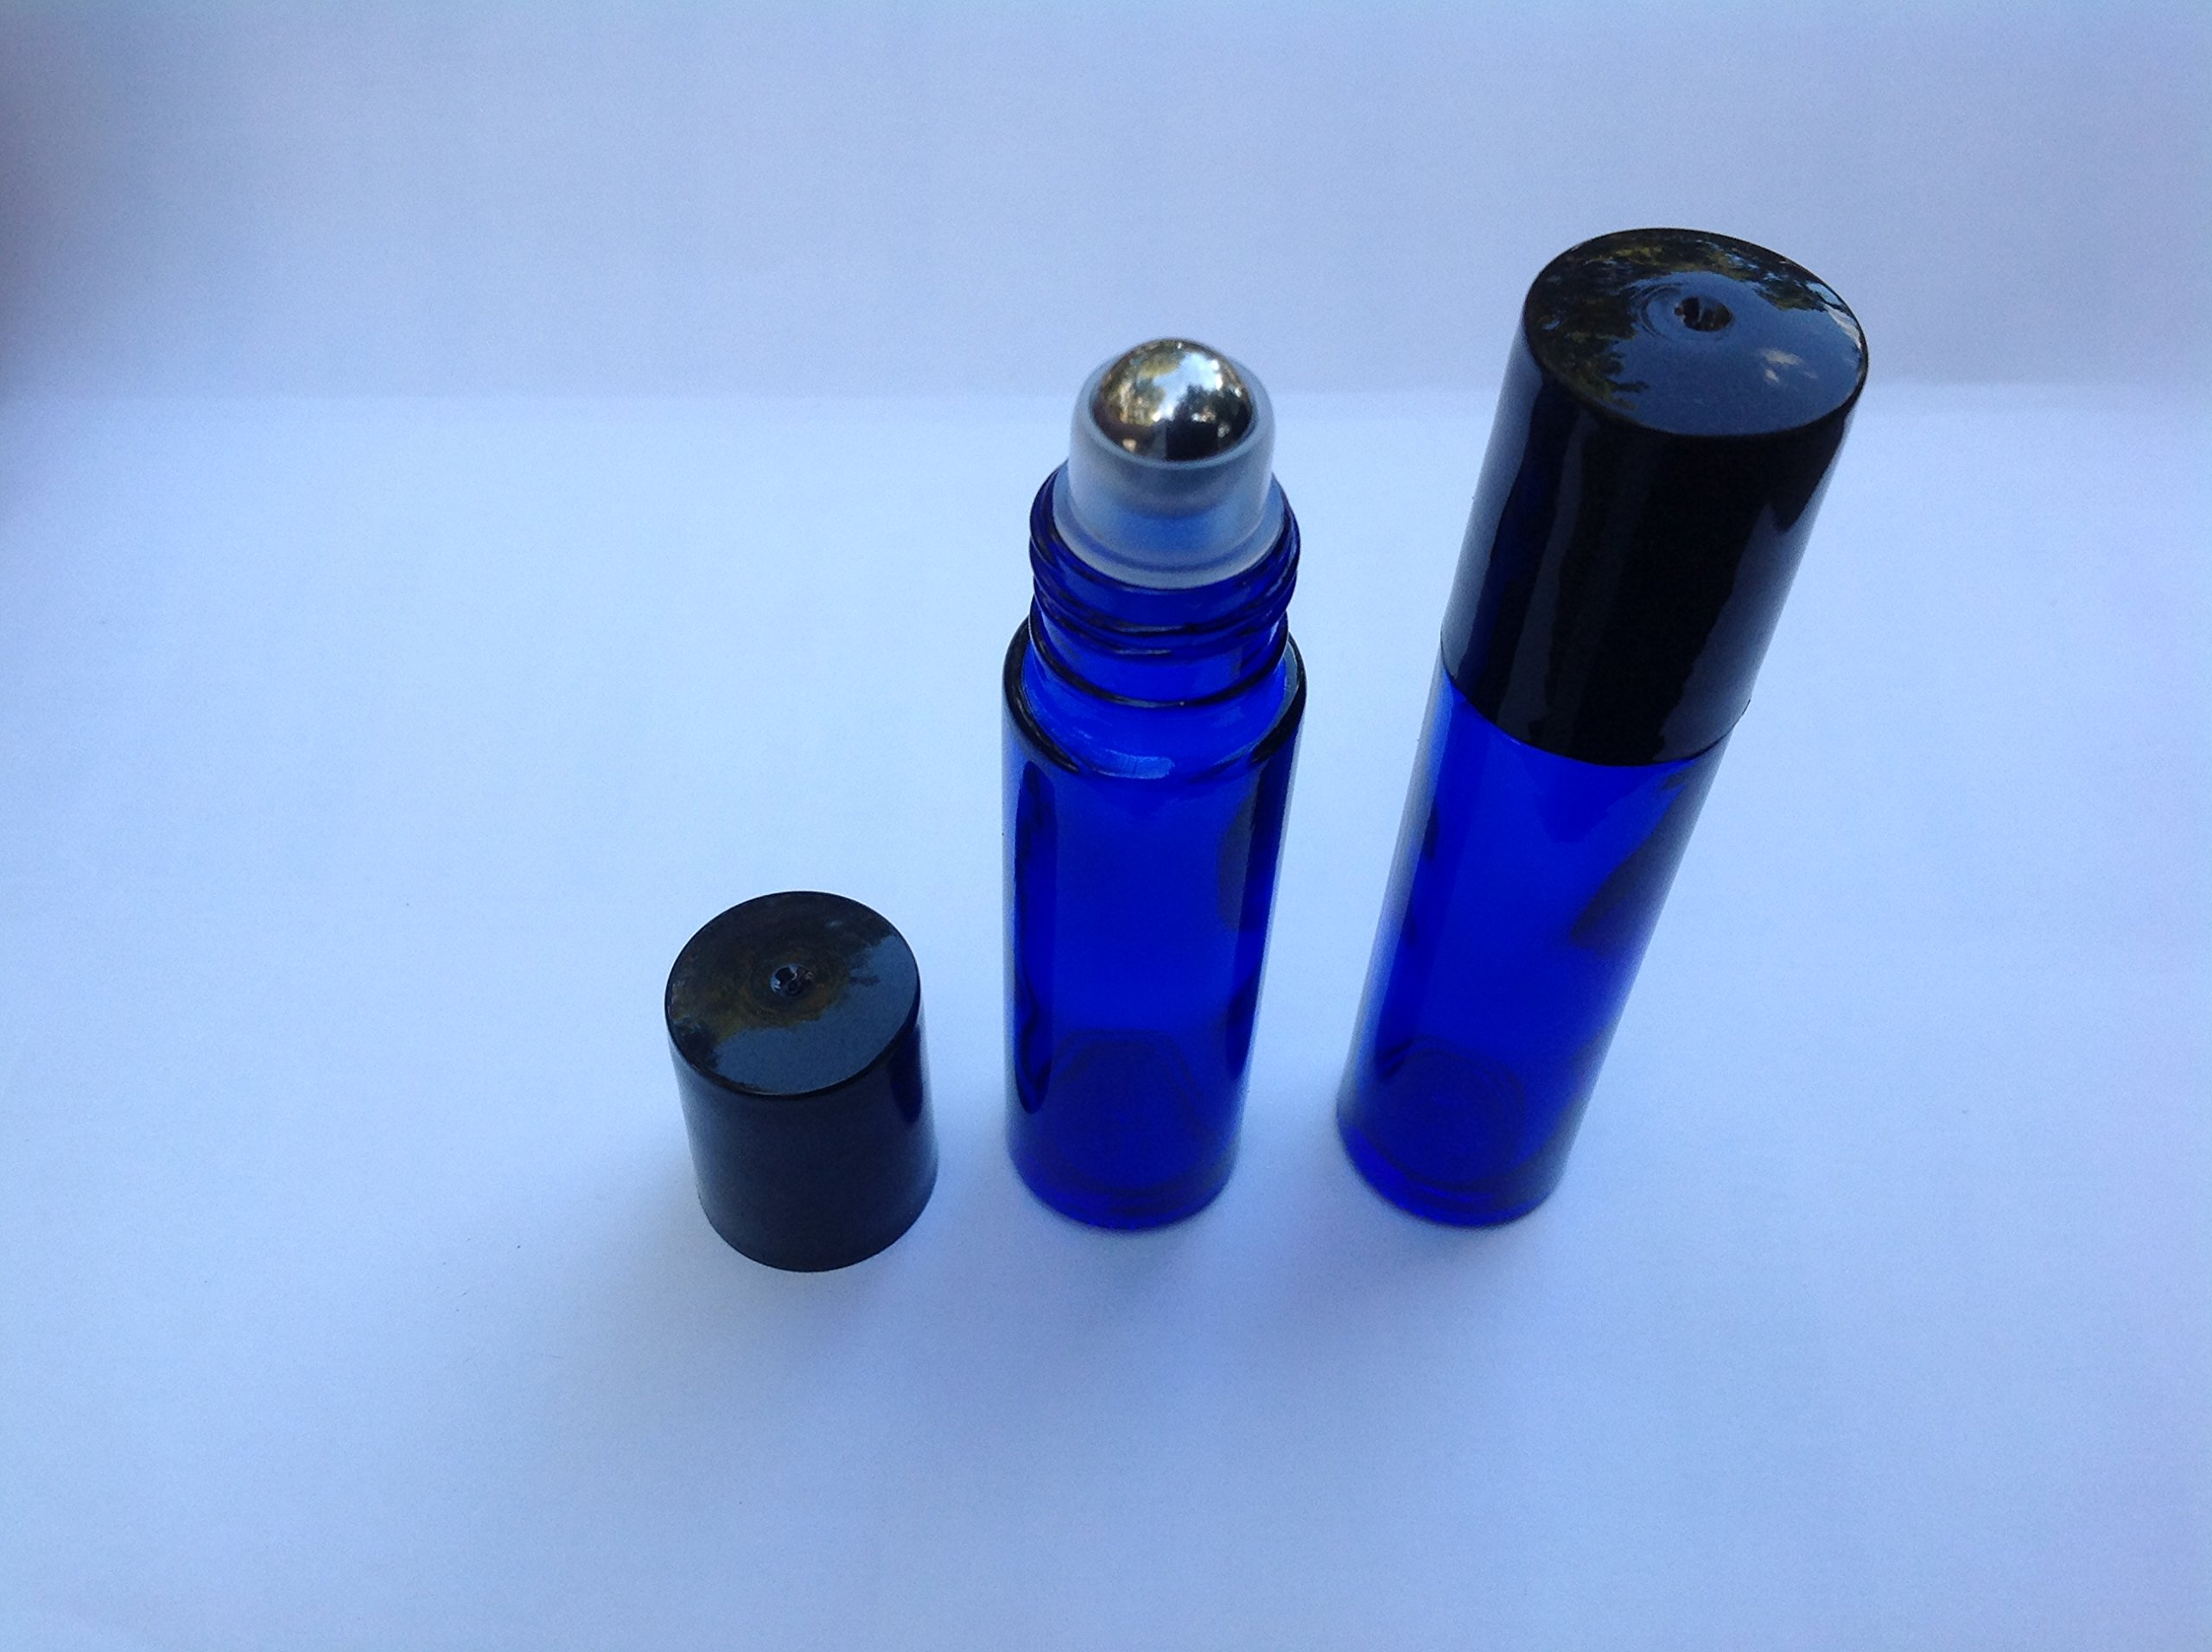 USA 144 - 10ml COBALT BLUE Glass Roll On THICK Bottles (144) with Stainless Steel Roller Balls - Refillable Aromatherapy Essential Oil Roll On (144)